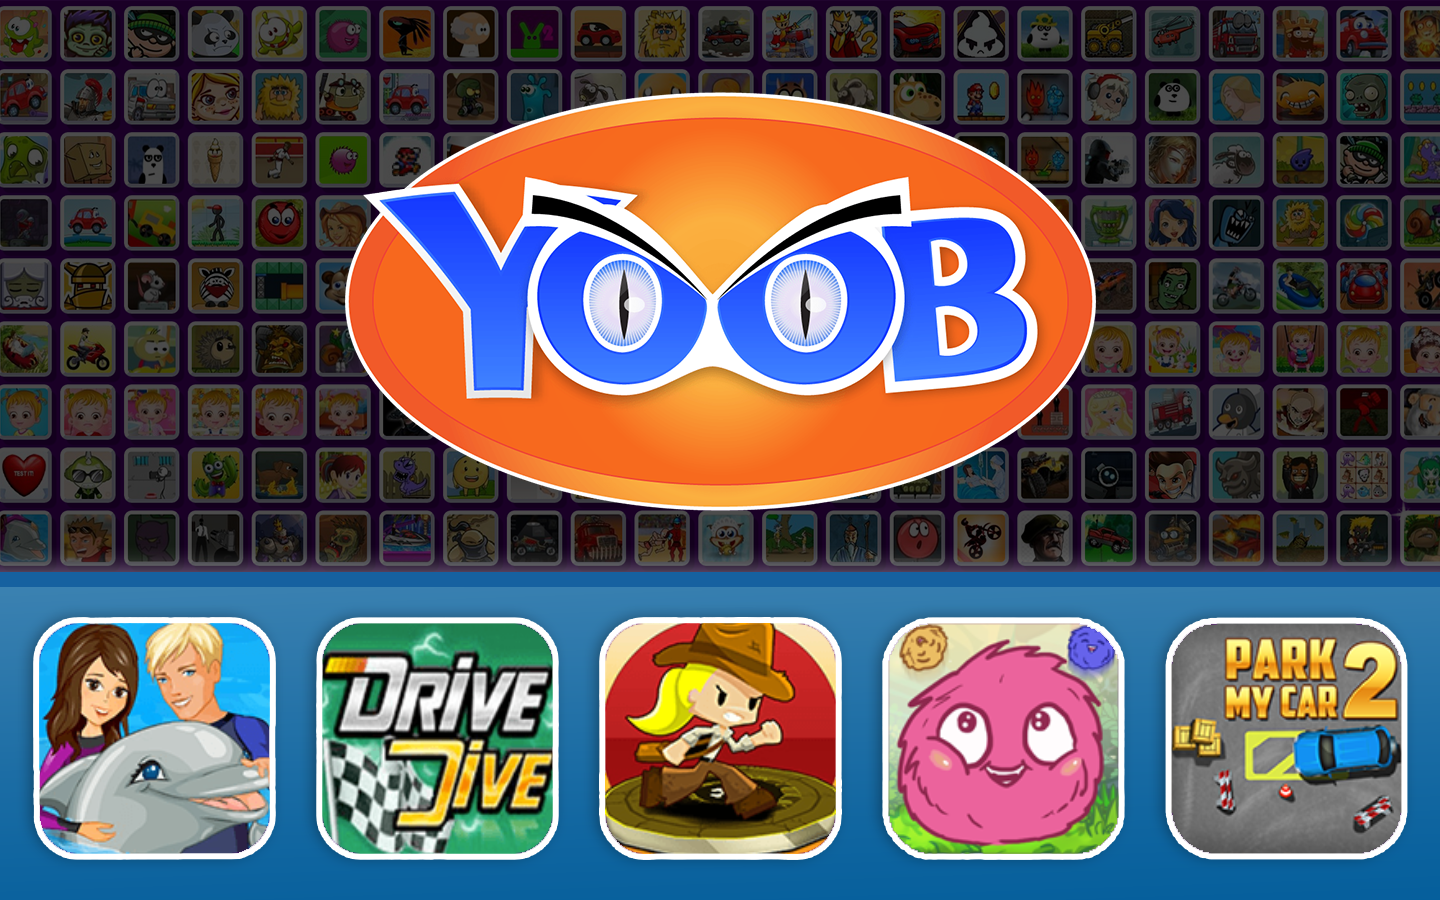 yoob games   android apps on google play